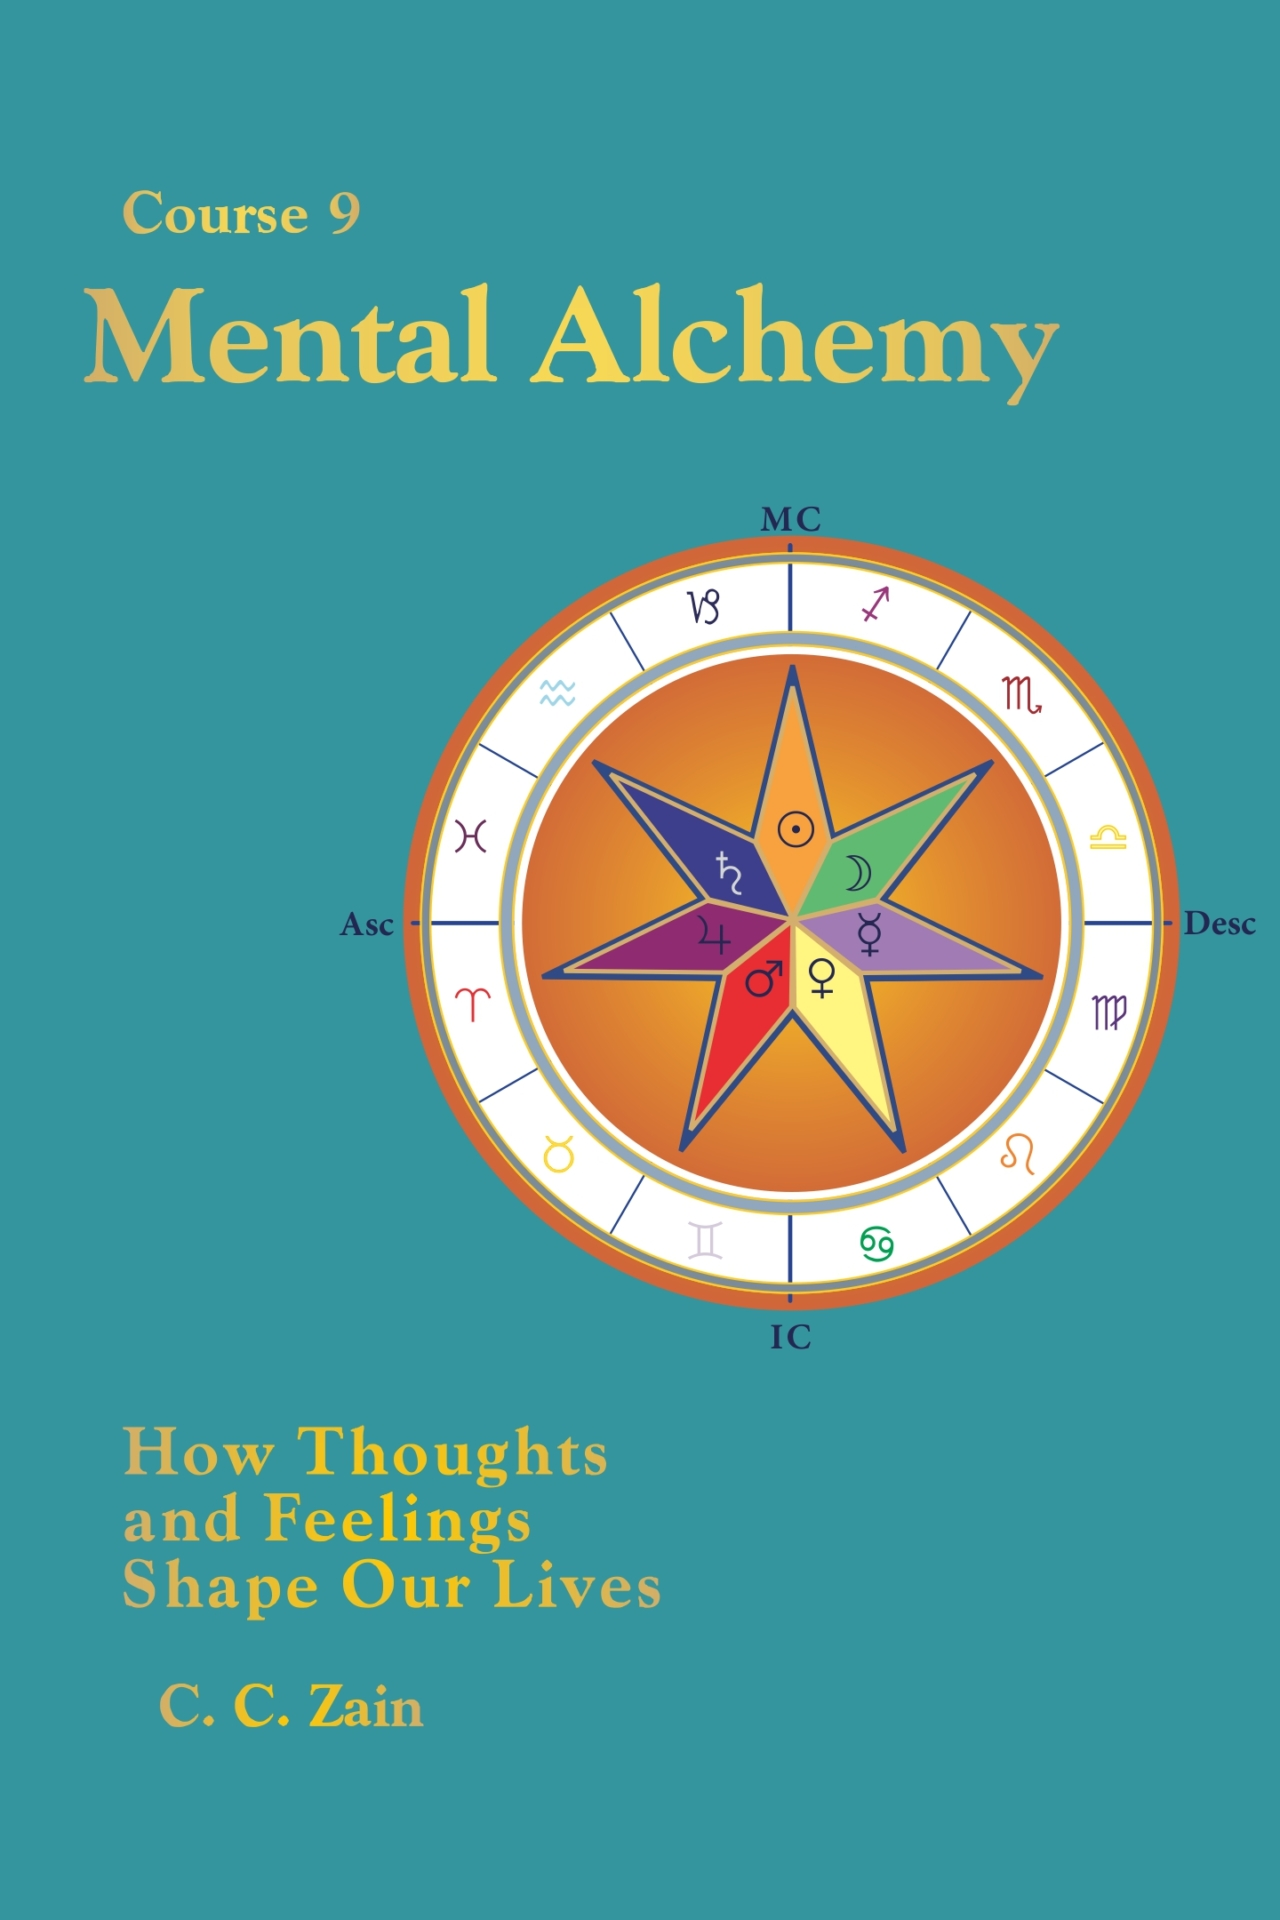 https://study.academyofhermeticarts.org/wp-content/uploads/2020/04/09_Mental_Alchemy_eBook_Cover-1280x1920.jpg